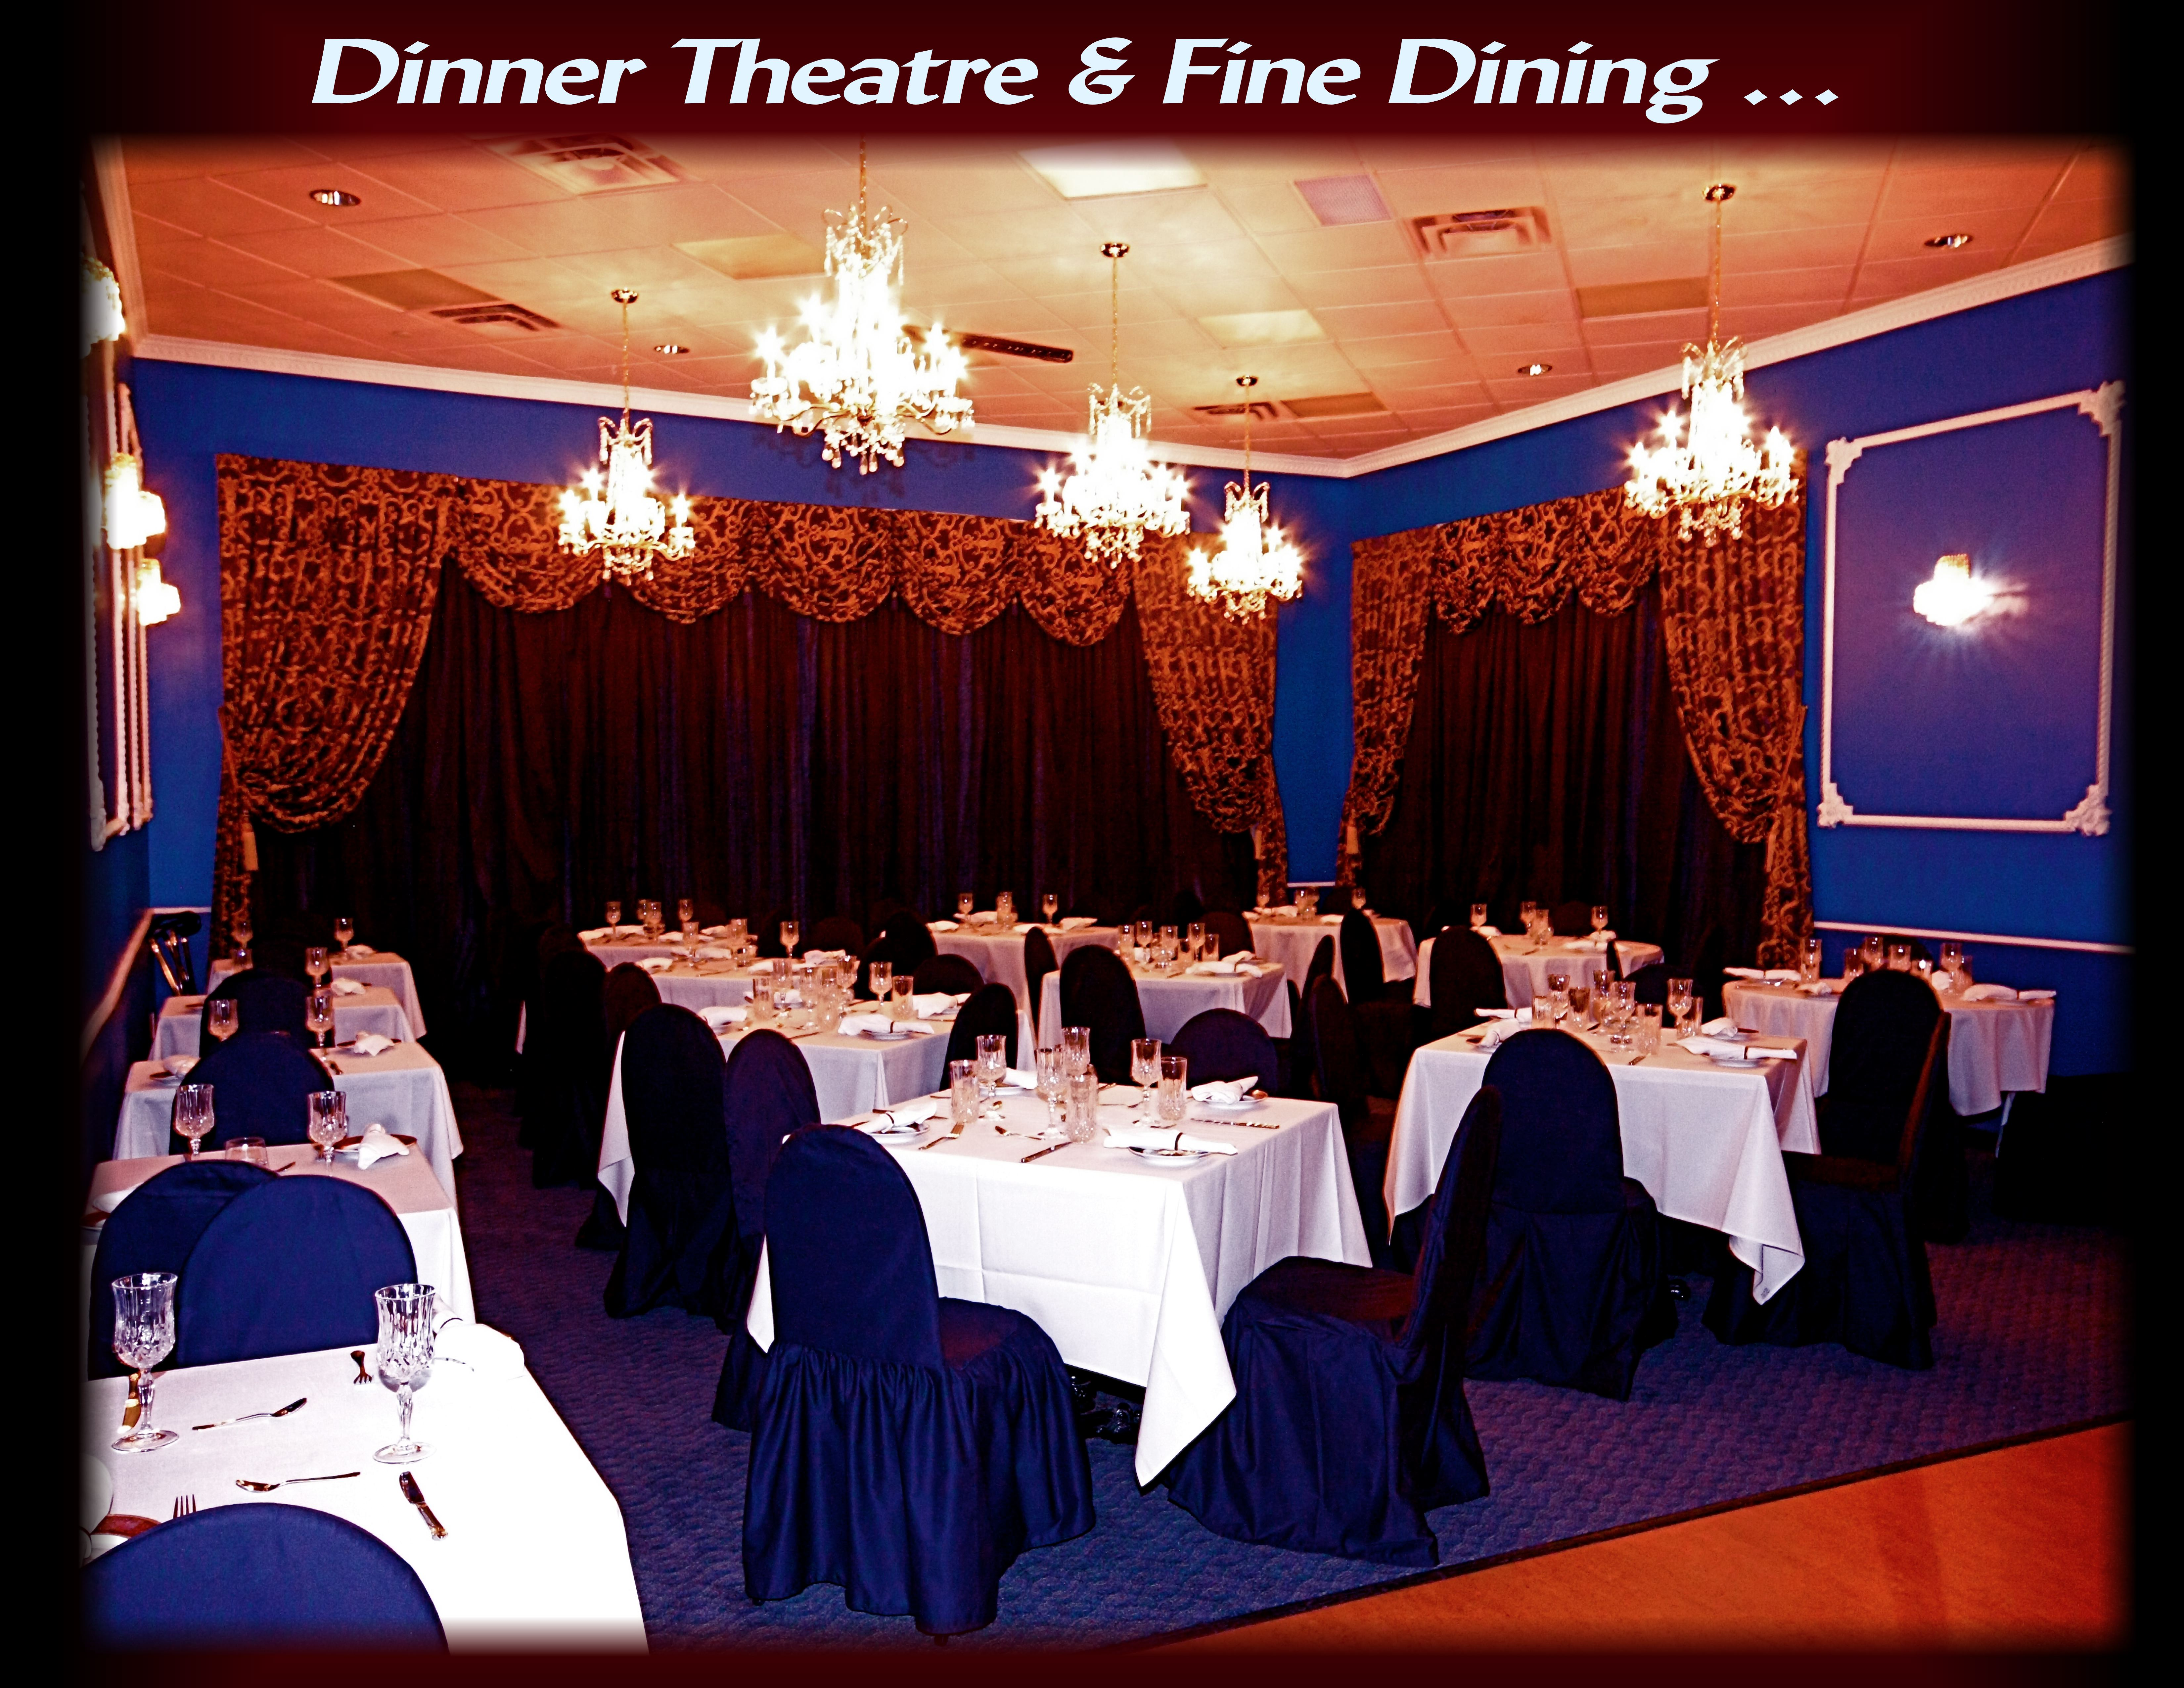 STARLIGHT FINE DINING RESTAURANT AND DINNER THEATRE